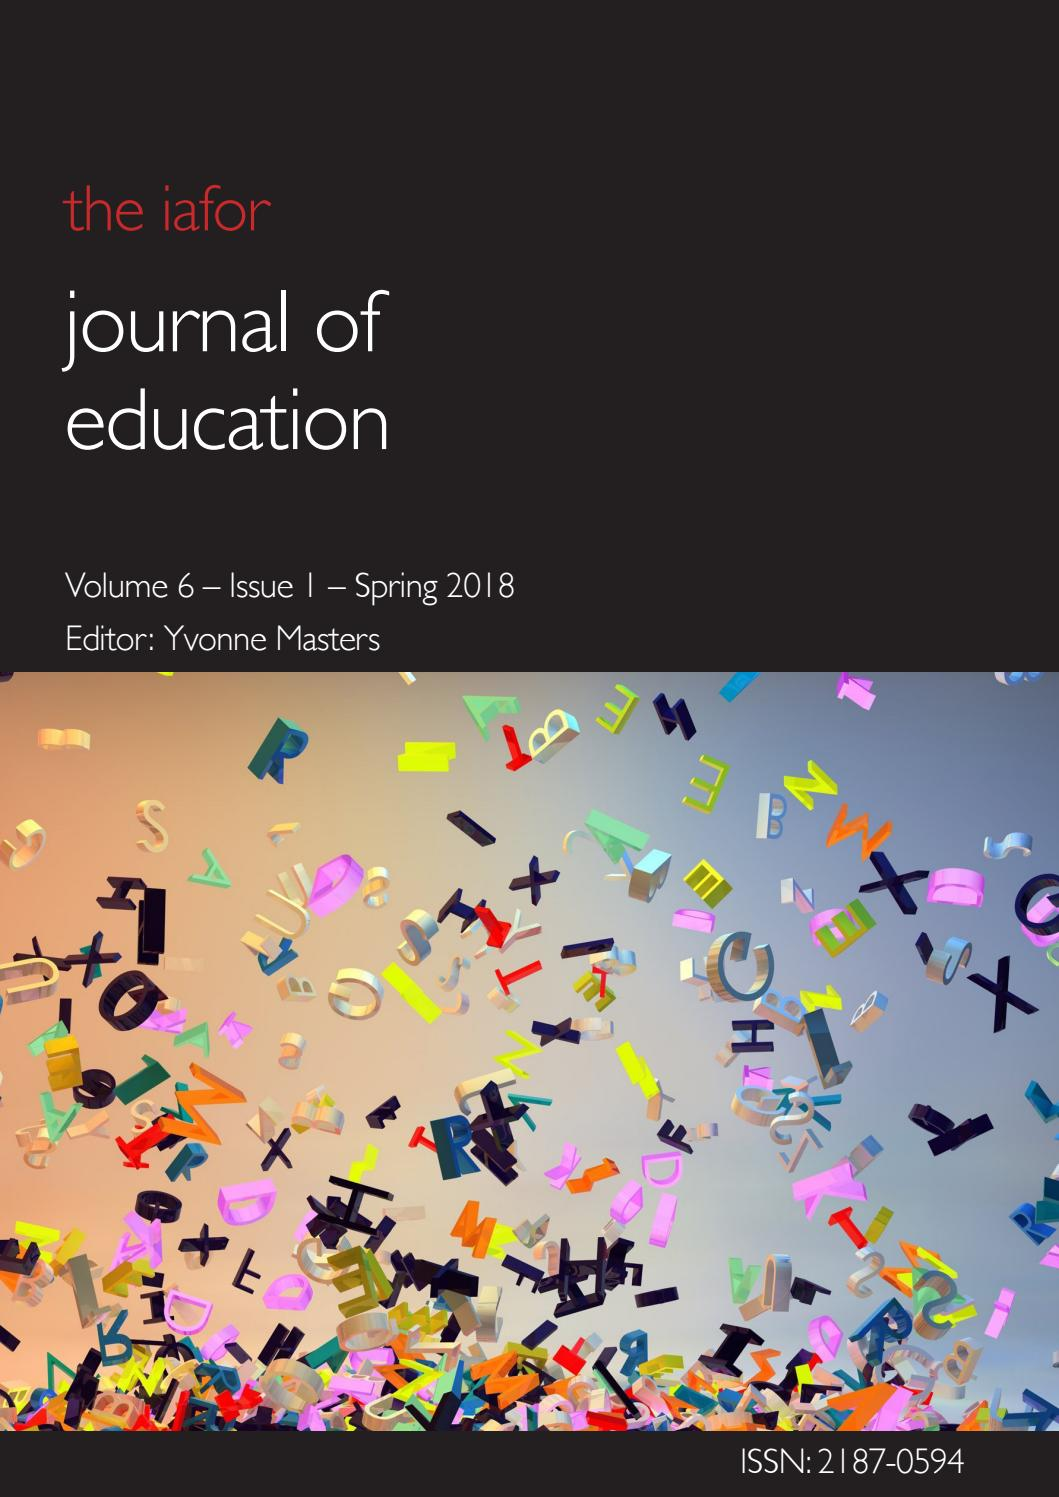 Iafor Journal Of Education Volume 6 Issue 1 Spring 2018 By Iafor Issuu